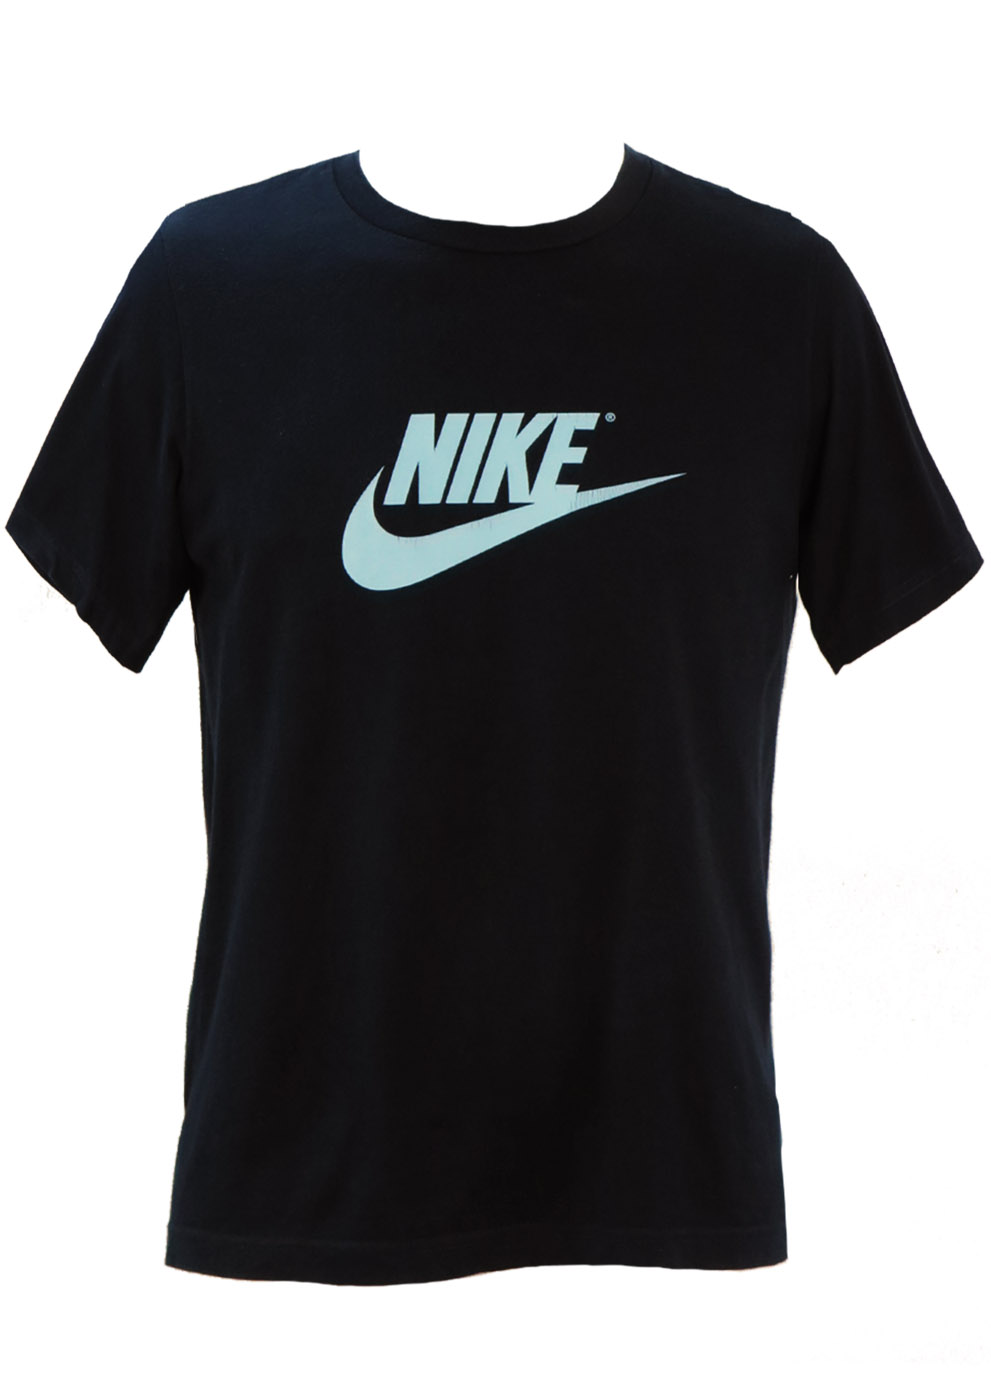 Navy blue nike t shirt with light blue swoosh logo s m for Nike swoosh logo t shirt